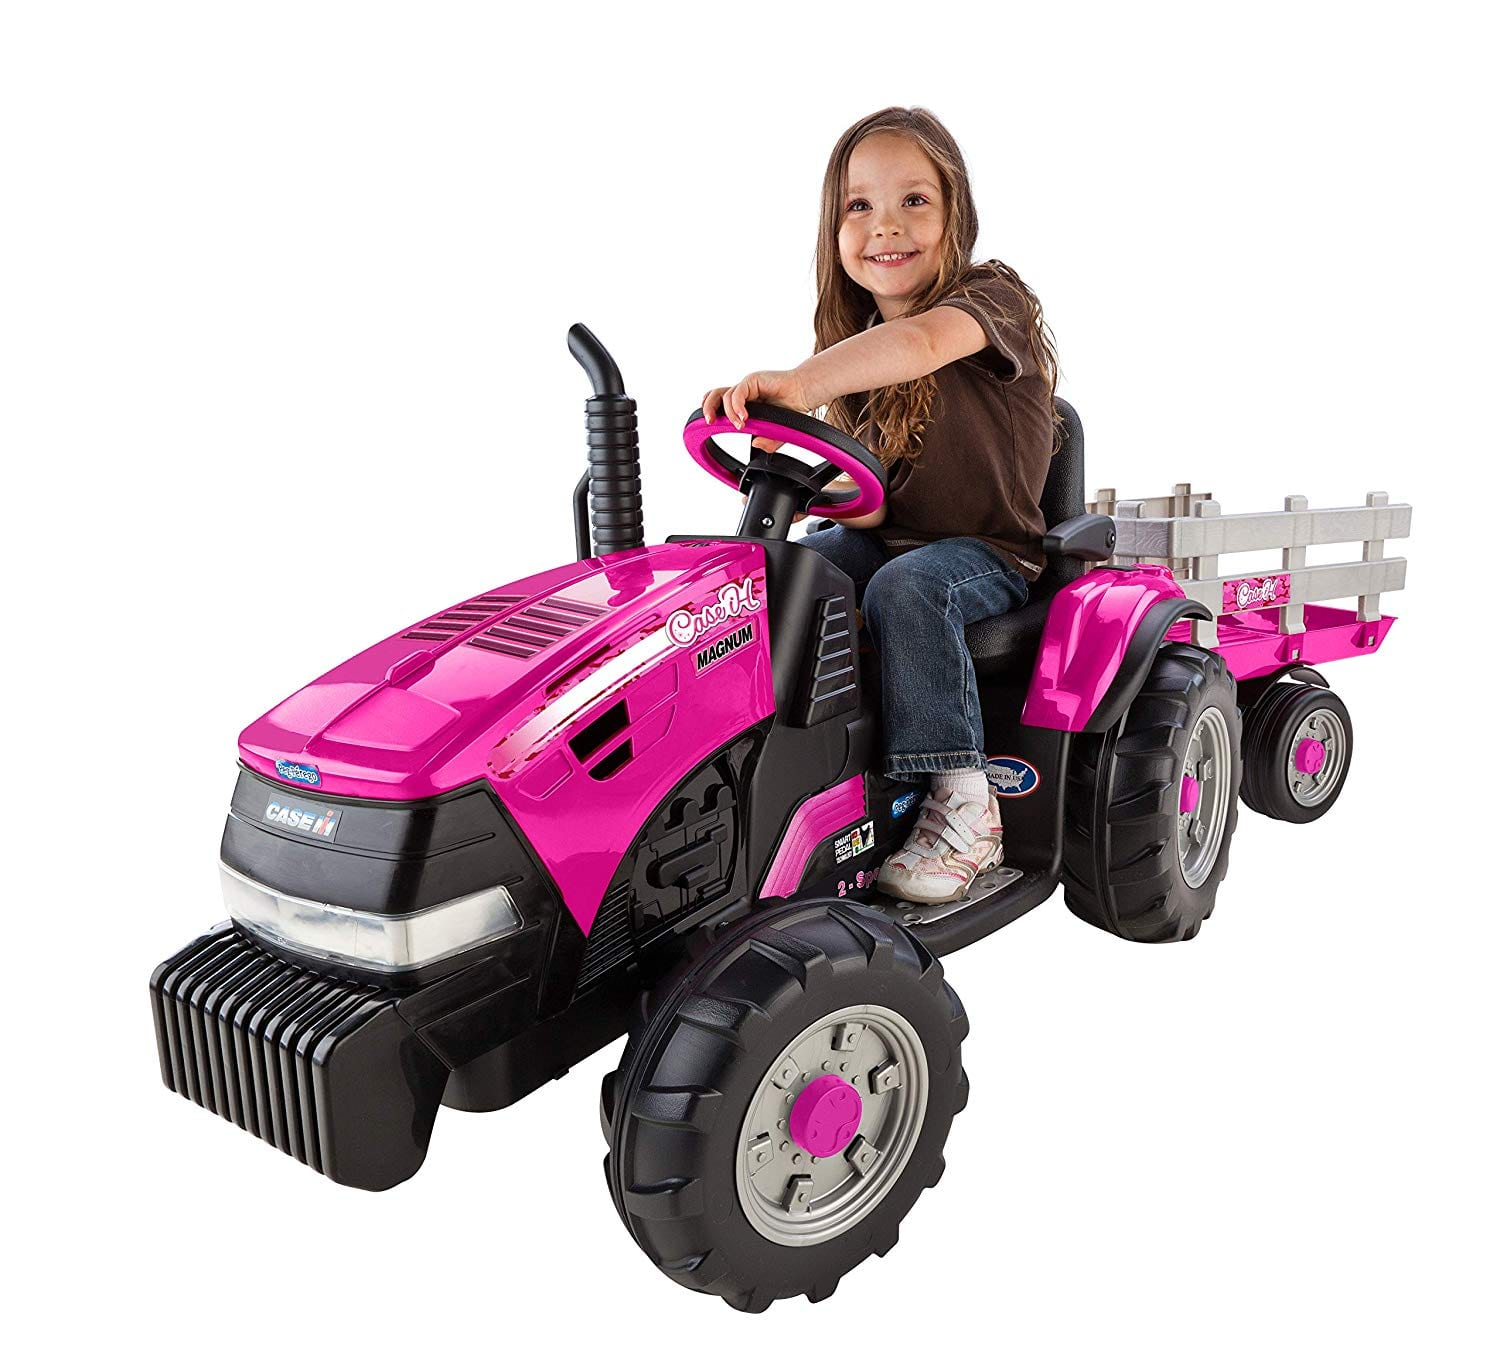 https://rideontoysplanet.com/p/peg-perego-tractor-ride-on-tractor-pink-grass-dirt-gravel-pavement/